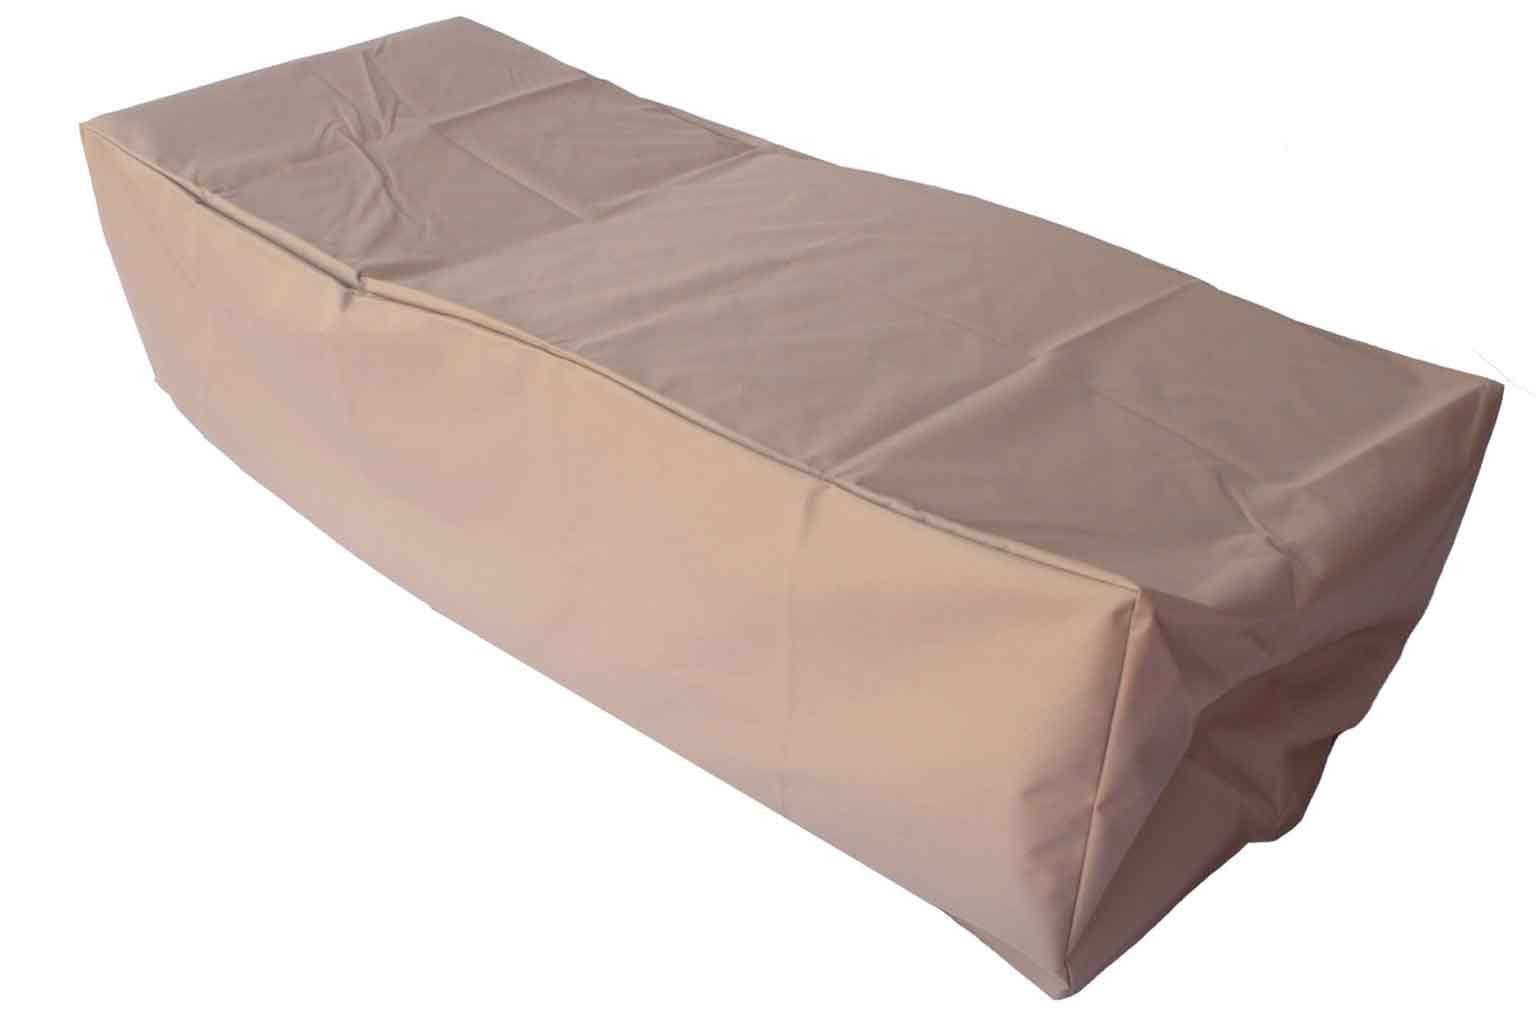 Leather Sleeper Sofa Chaise Lounge Patio Furniture Cover x x